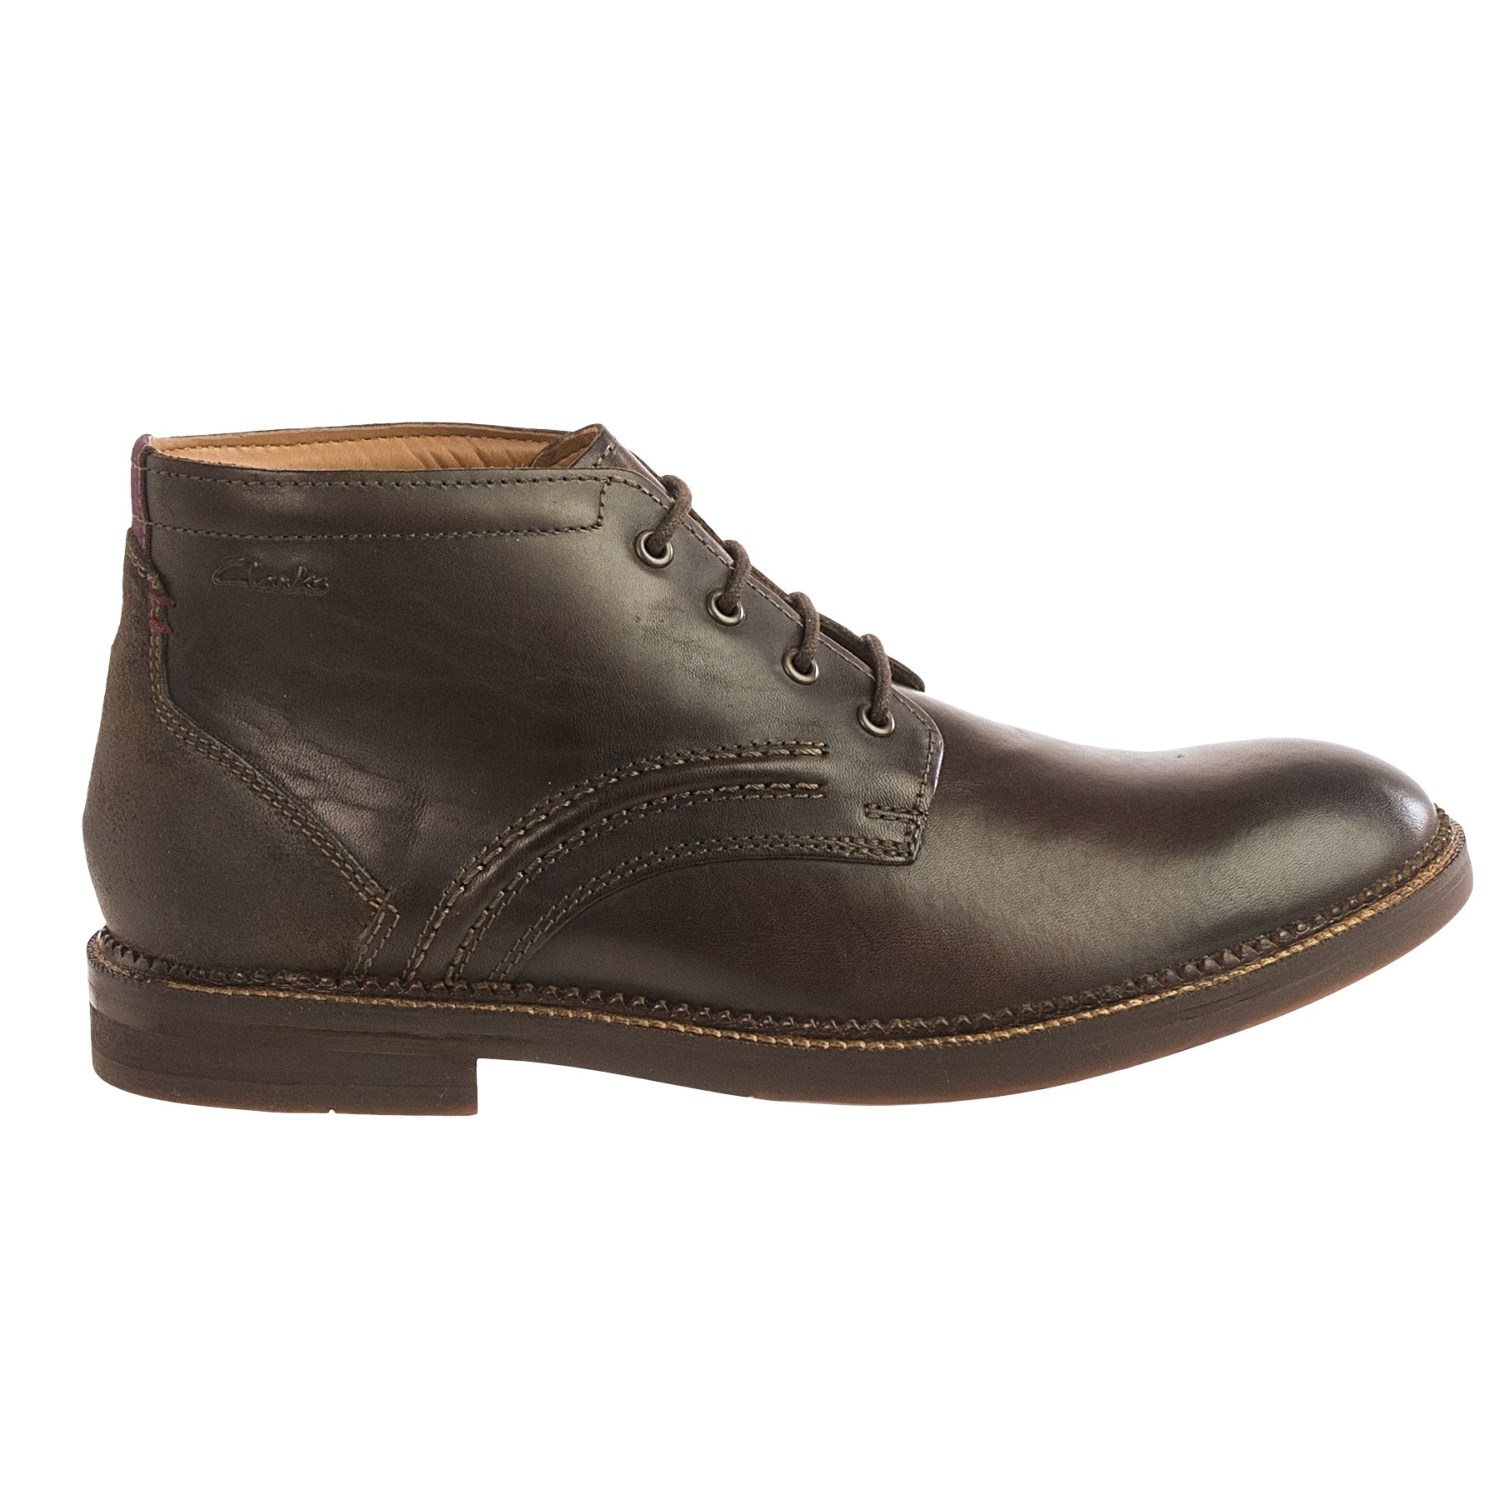 Clarks Bushwick Mid Boots For Men Save 46